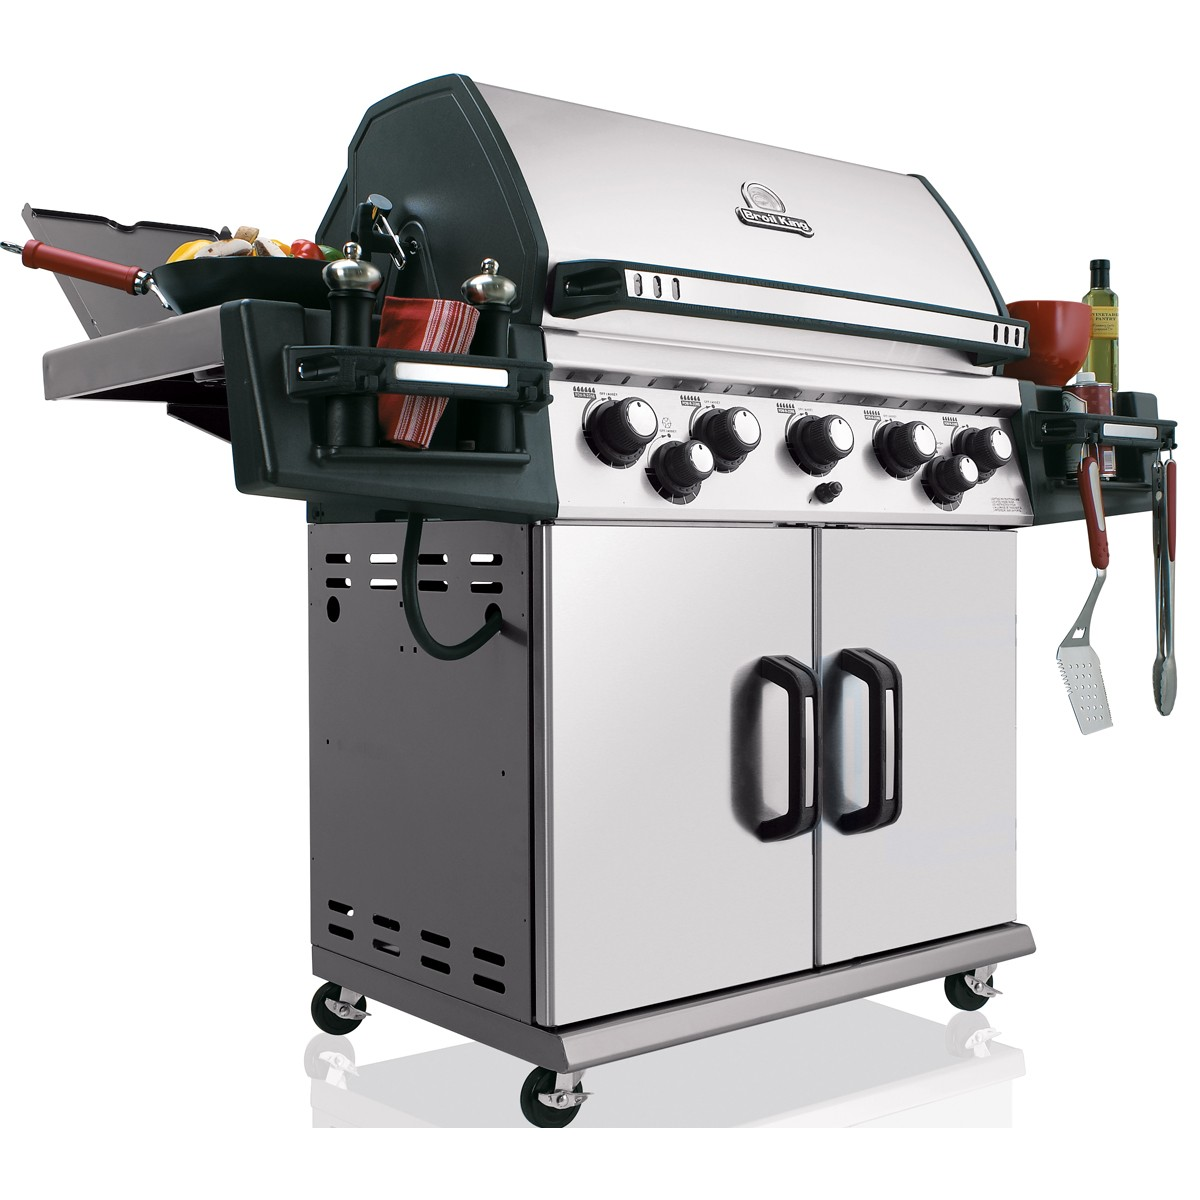 Broil-King-barbecue-1_308_248.jpg